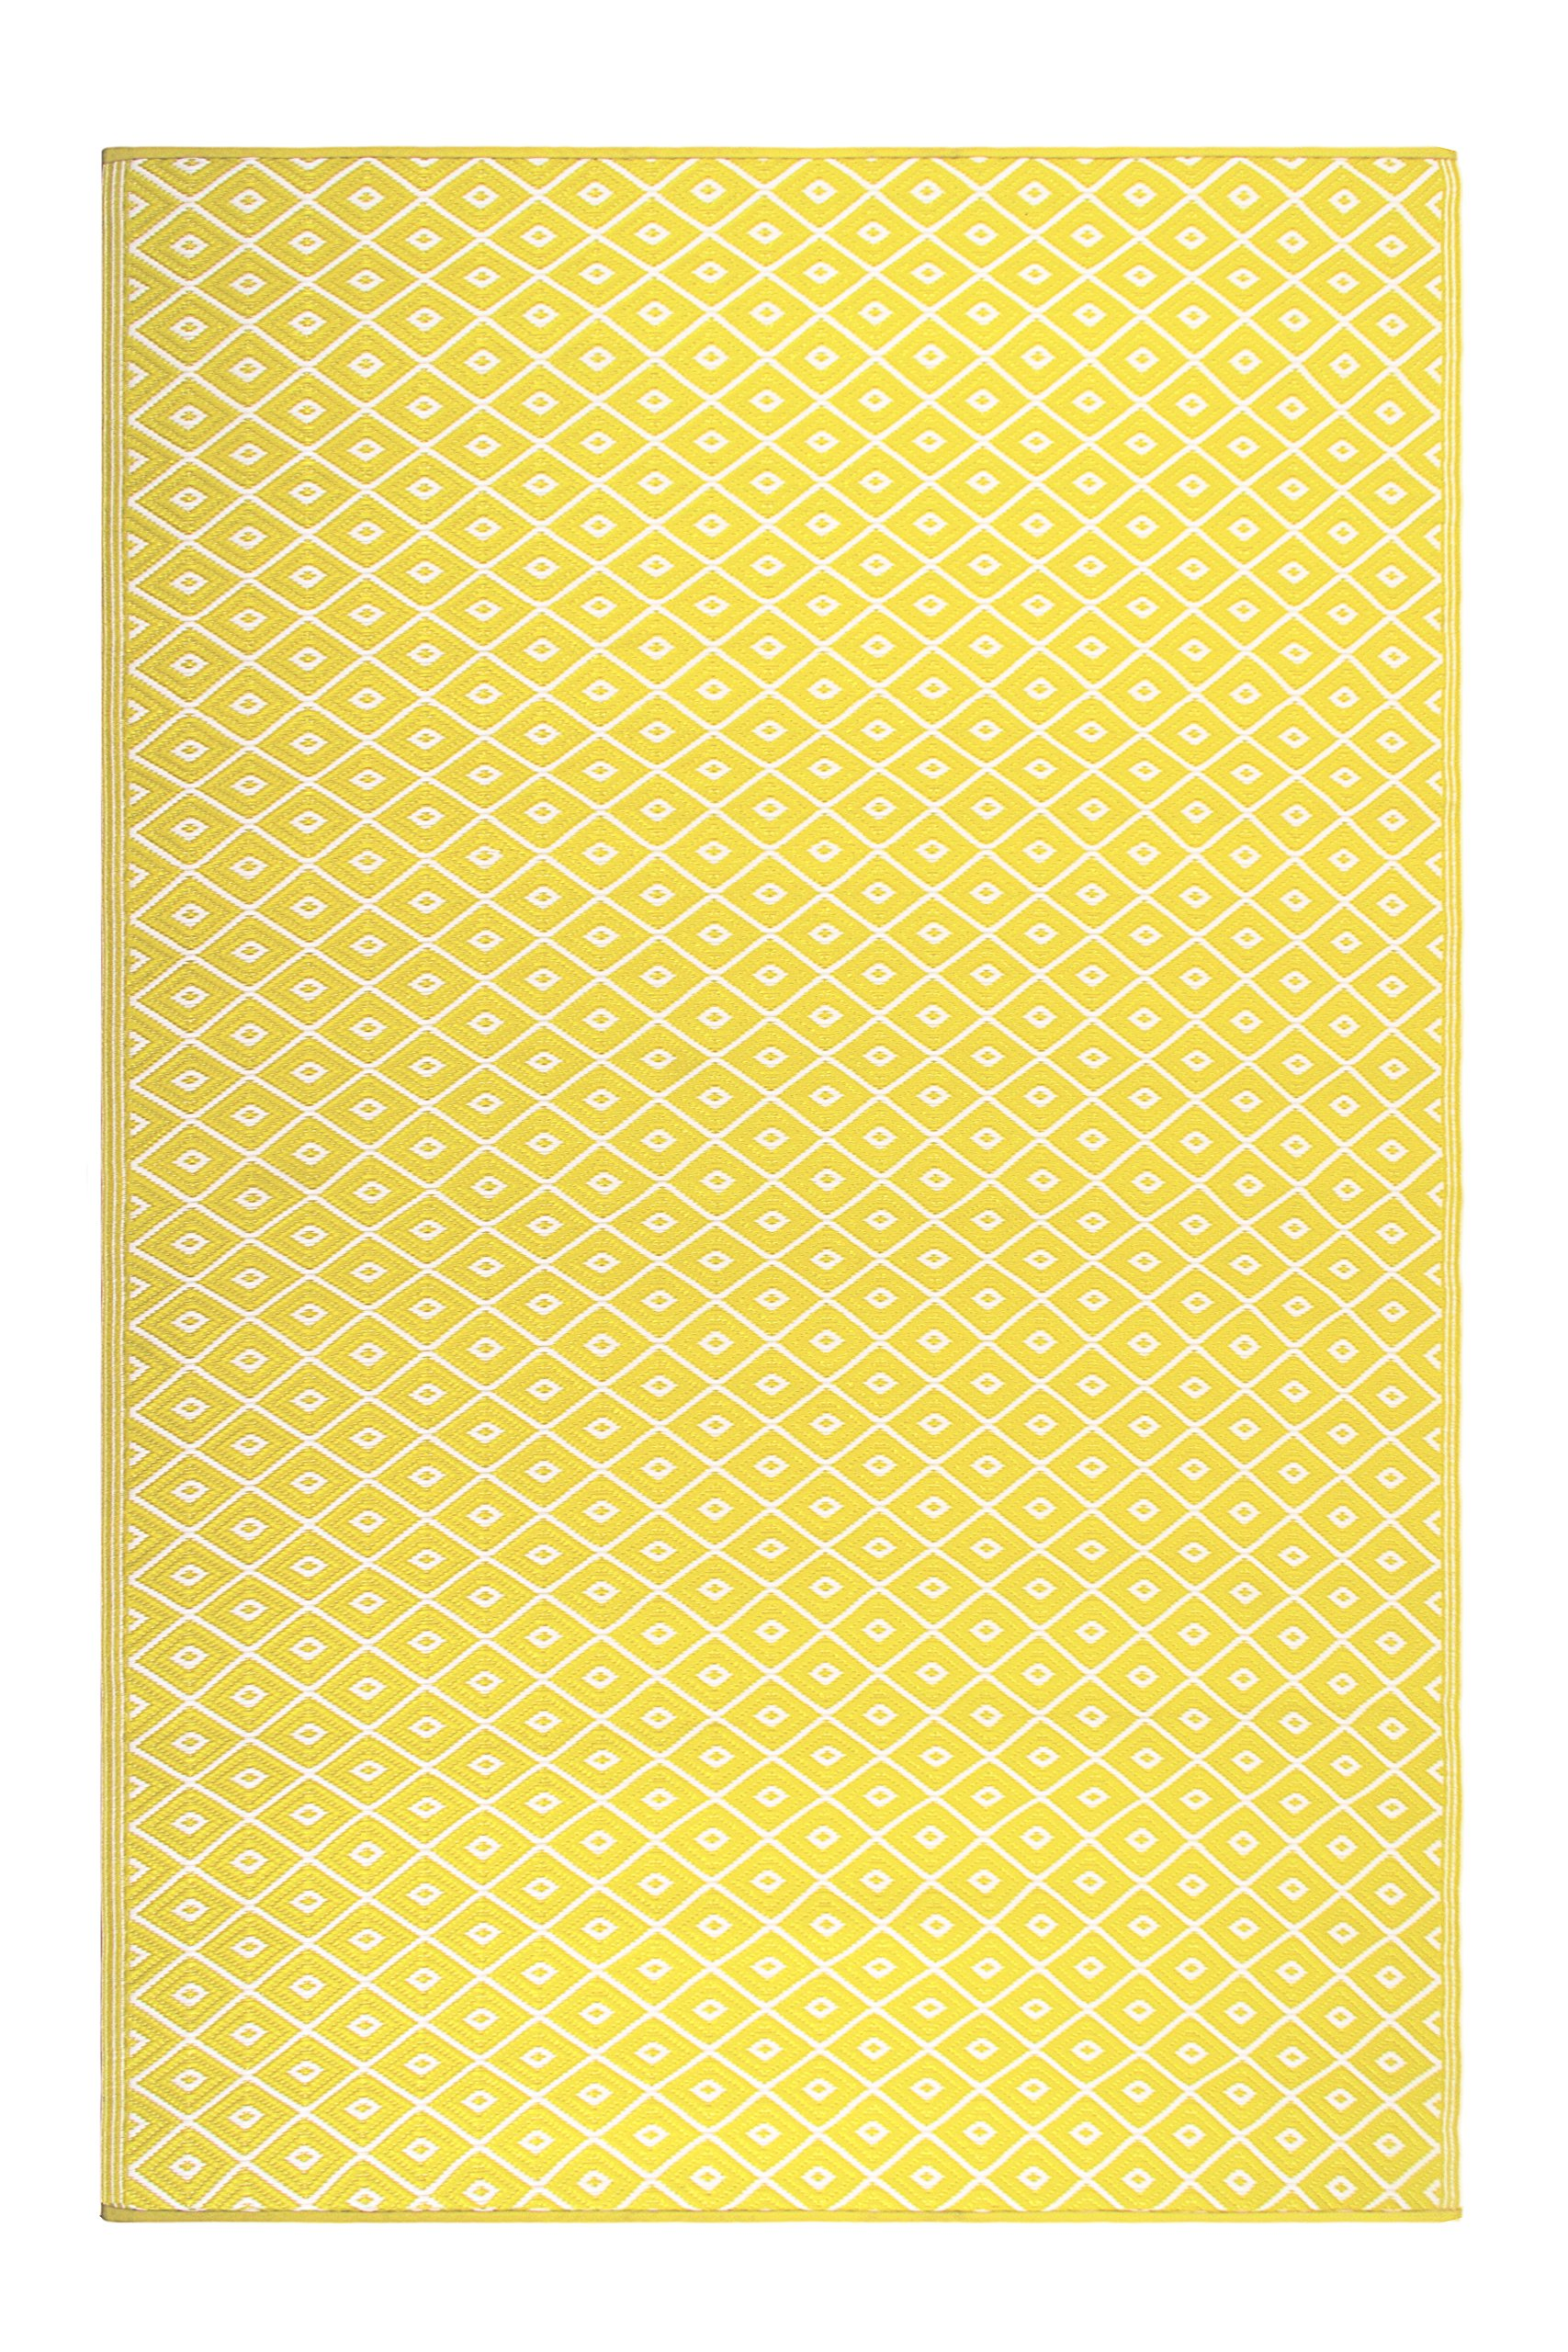 FH Home Indoor/Outdoor Recycled Plastic Floor Mat/Rug - Reversible - Weather & UV Resistant - GM16 - Yellow (5 ft x 8 ft) by FH Home (Image #1)